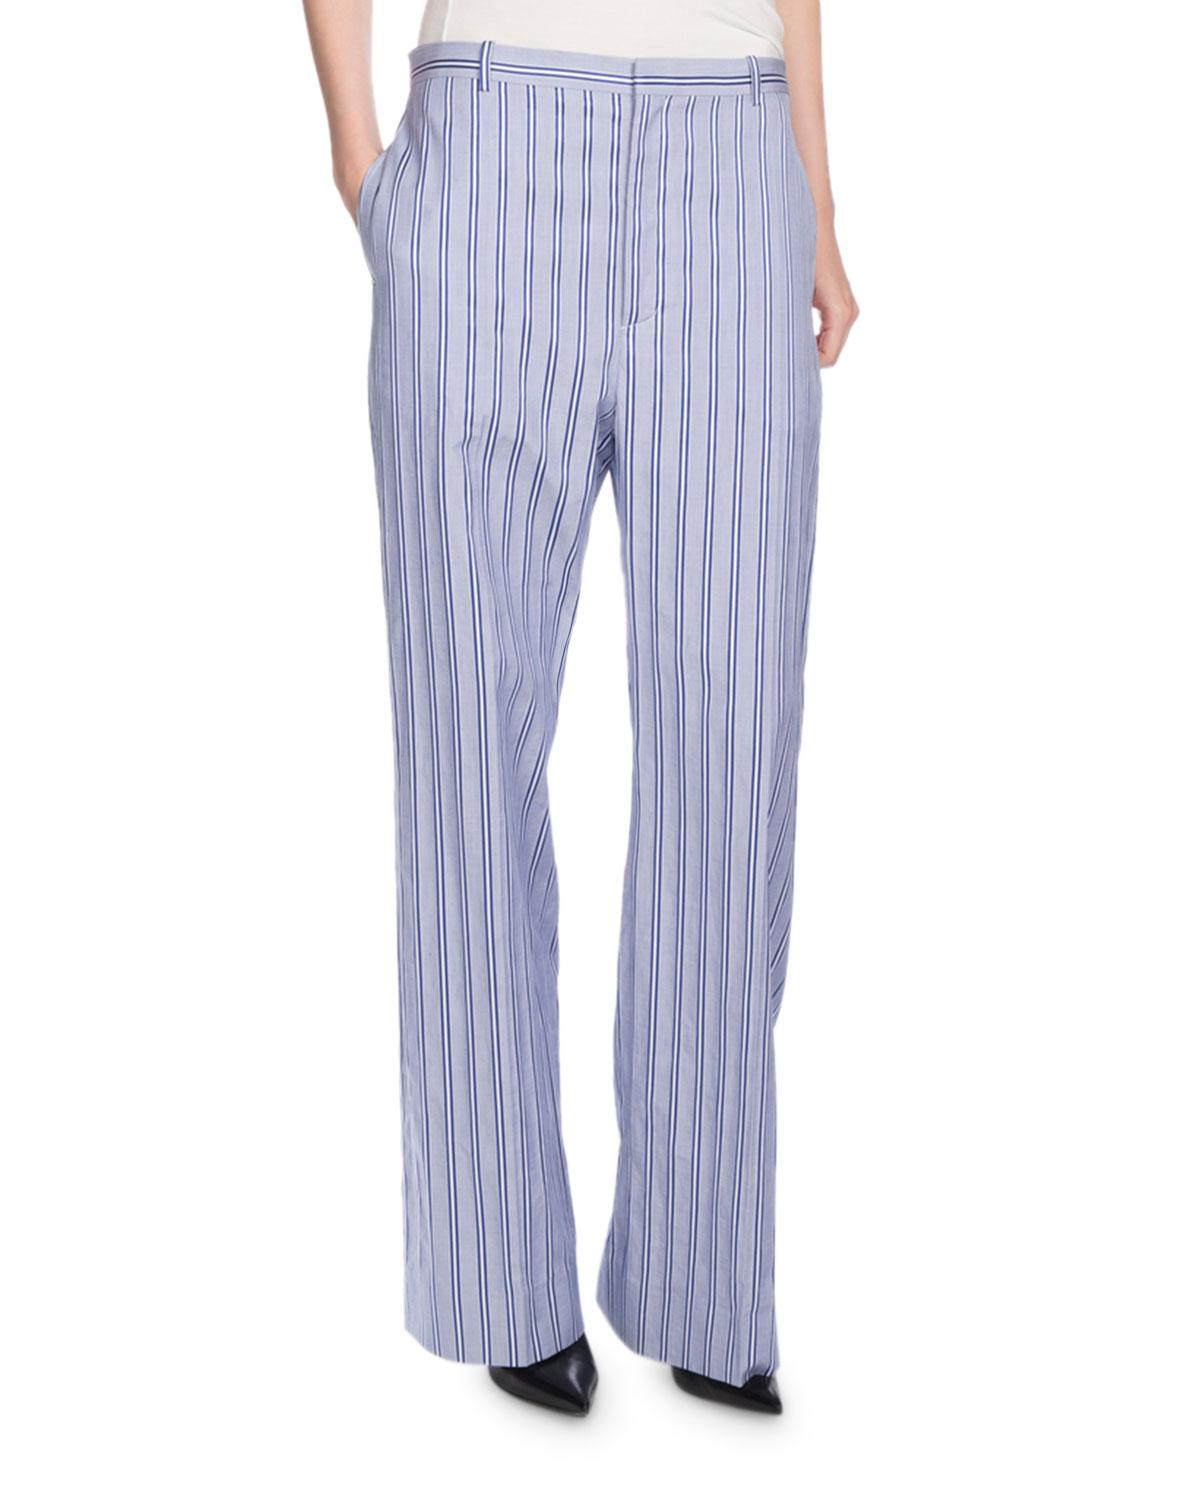 Vintage Wide Leg Pants s to s History. Wide leg pants are back in fashion for fall. The new need for women was pants to work in. Sturdy cotton twill and denim pants and overalls were modified from men's work clothes to make factory workers out of women.